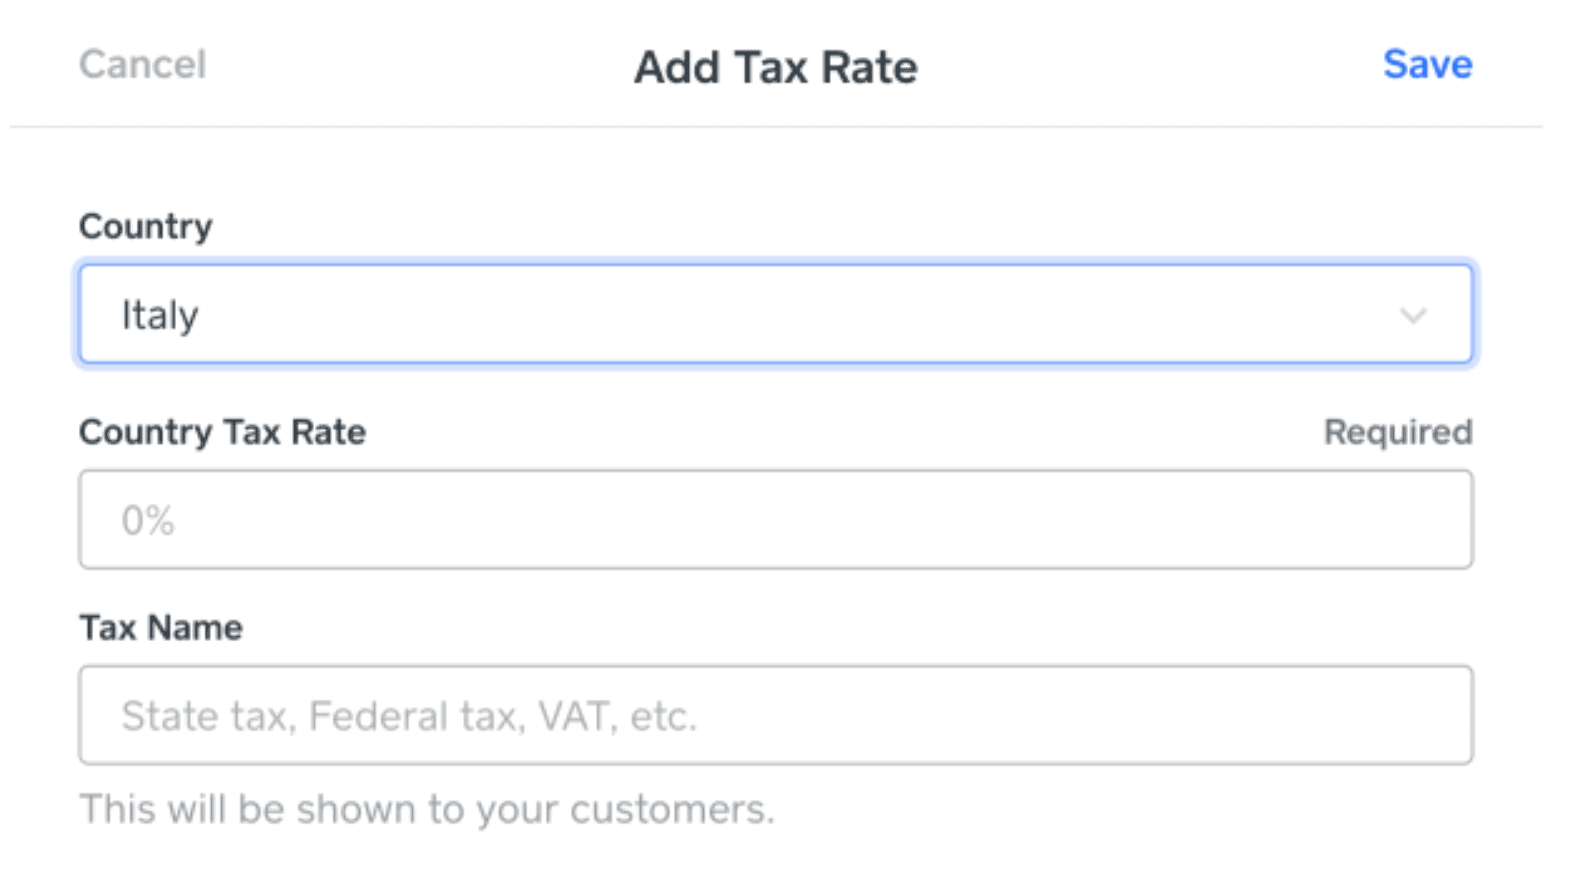 Square's tax calculator